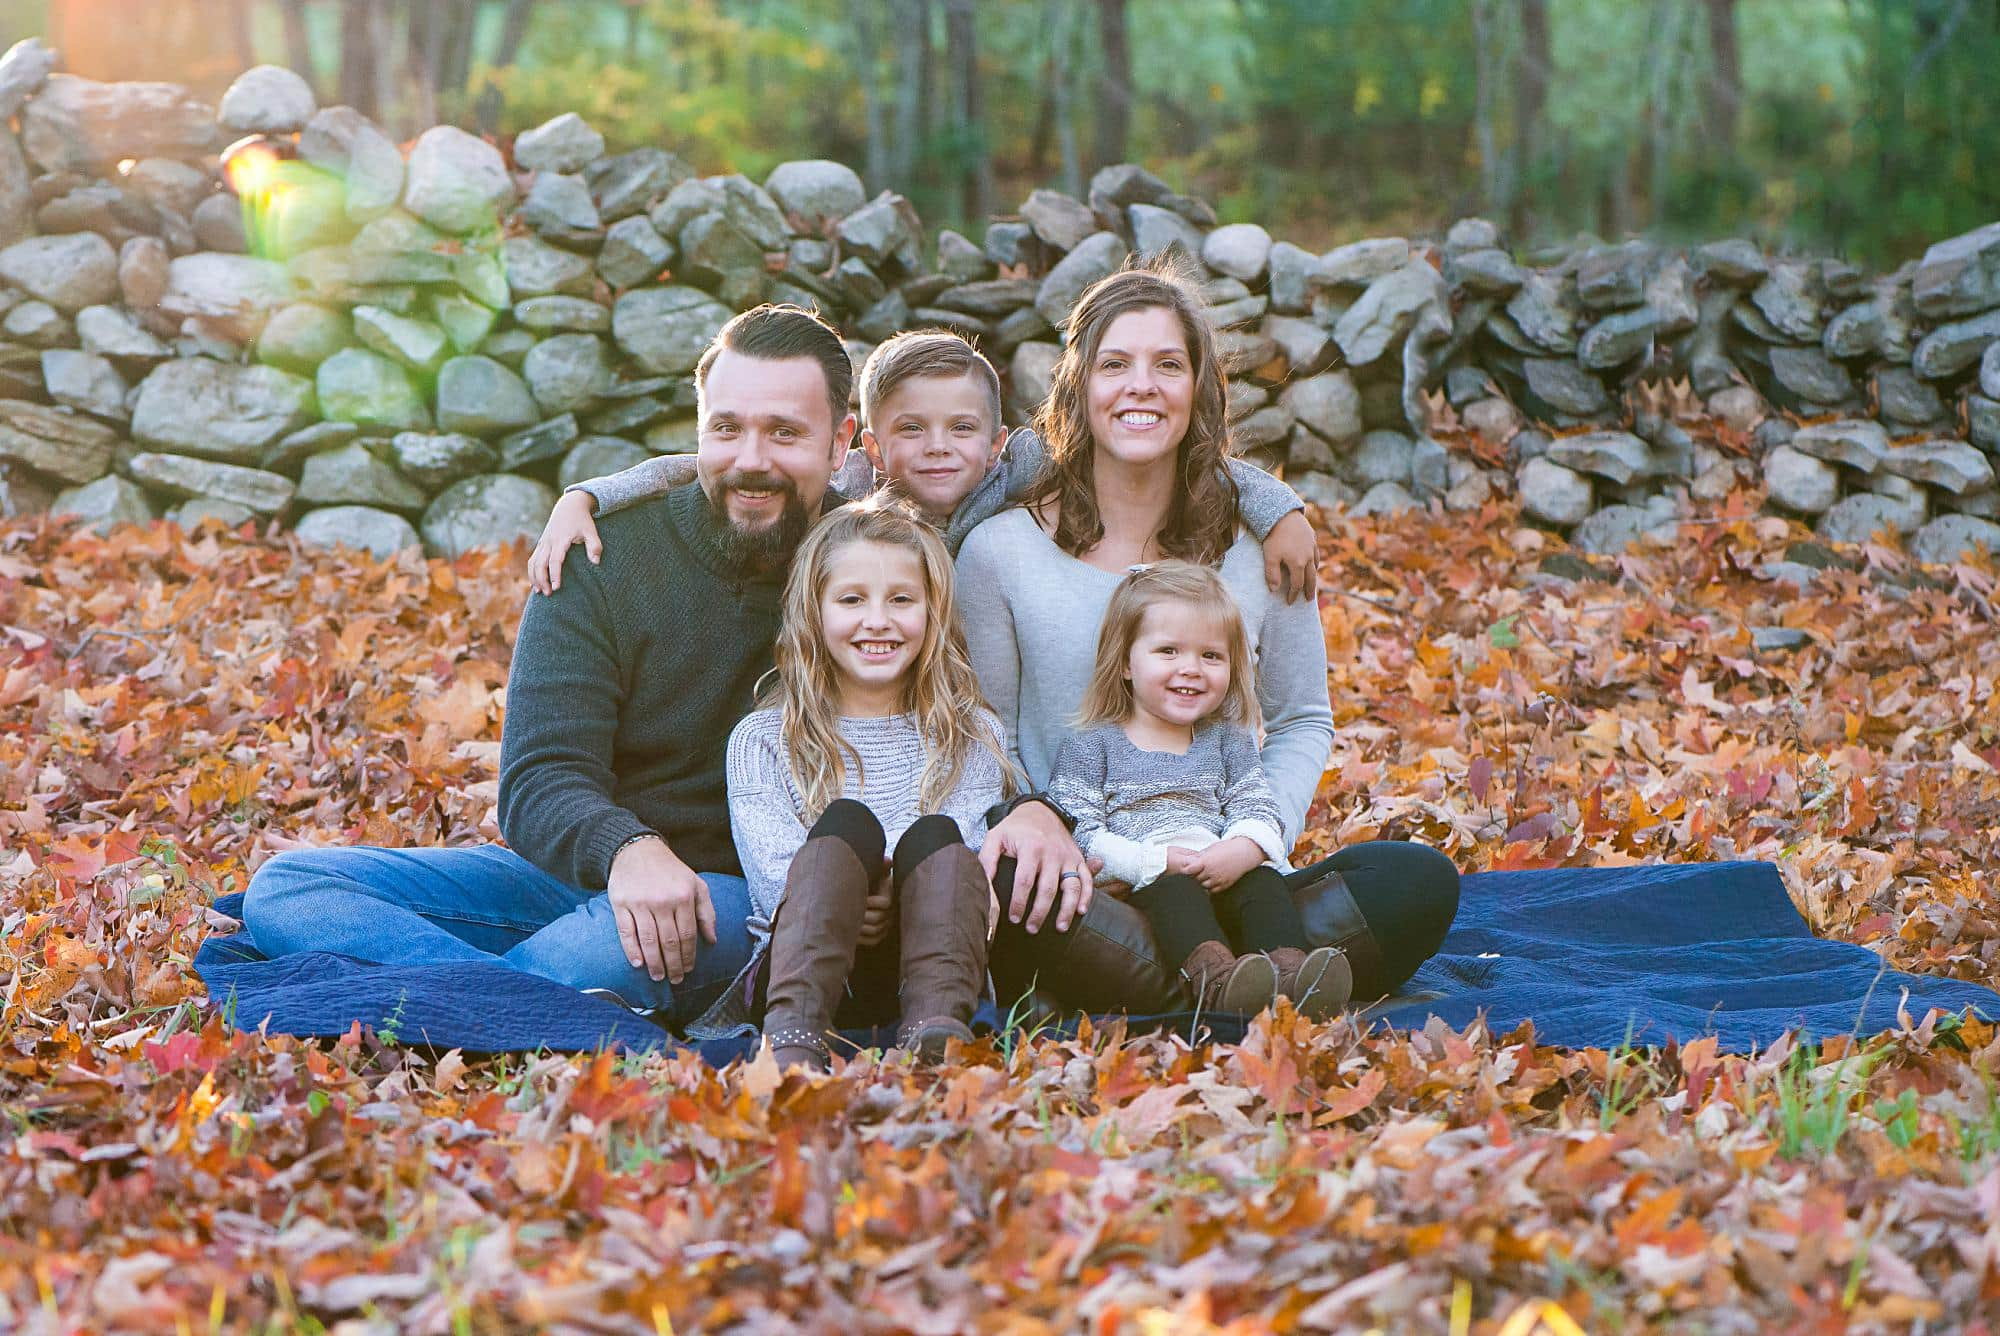 Familt of 5 sitting in leaves with Fall colors